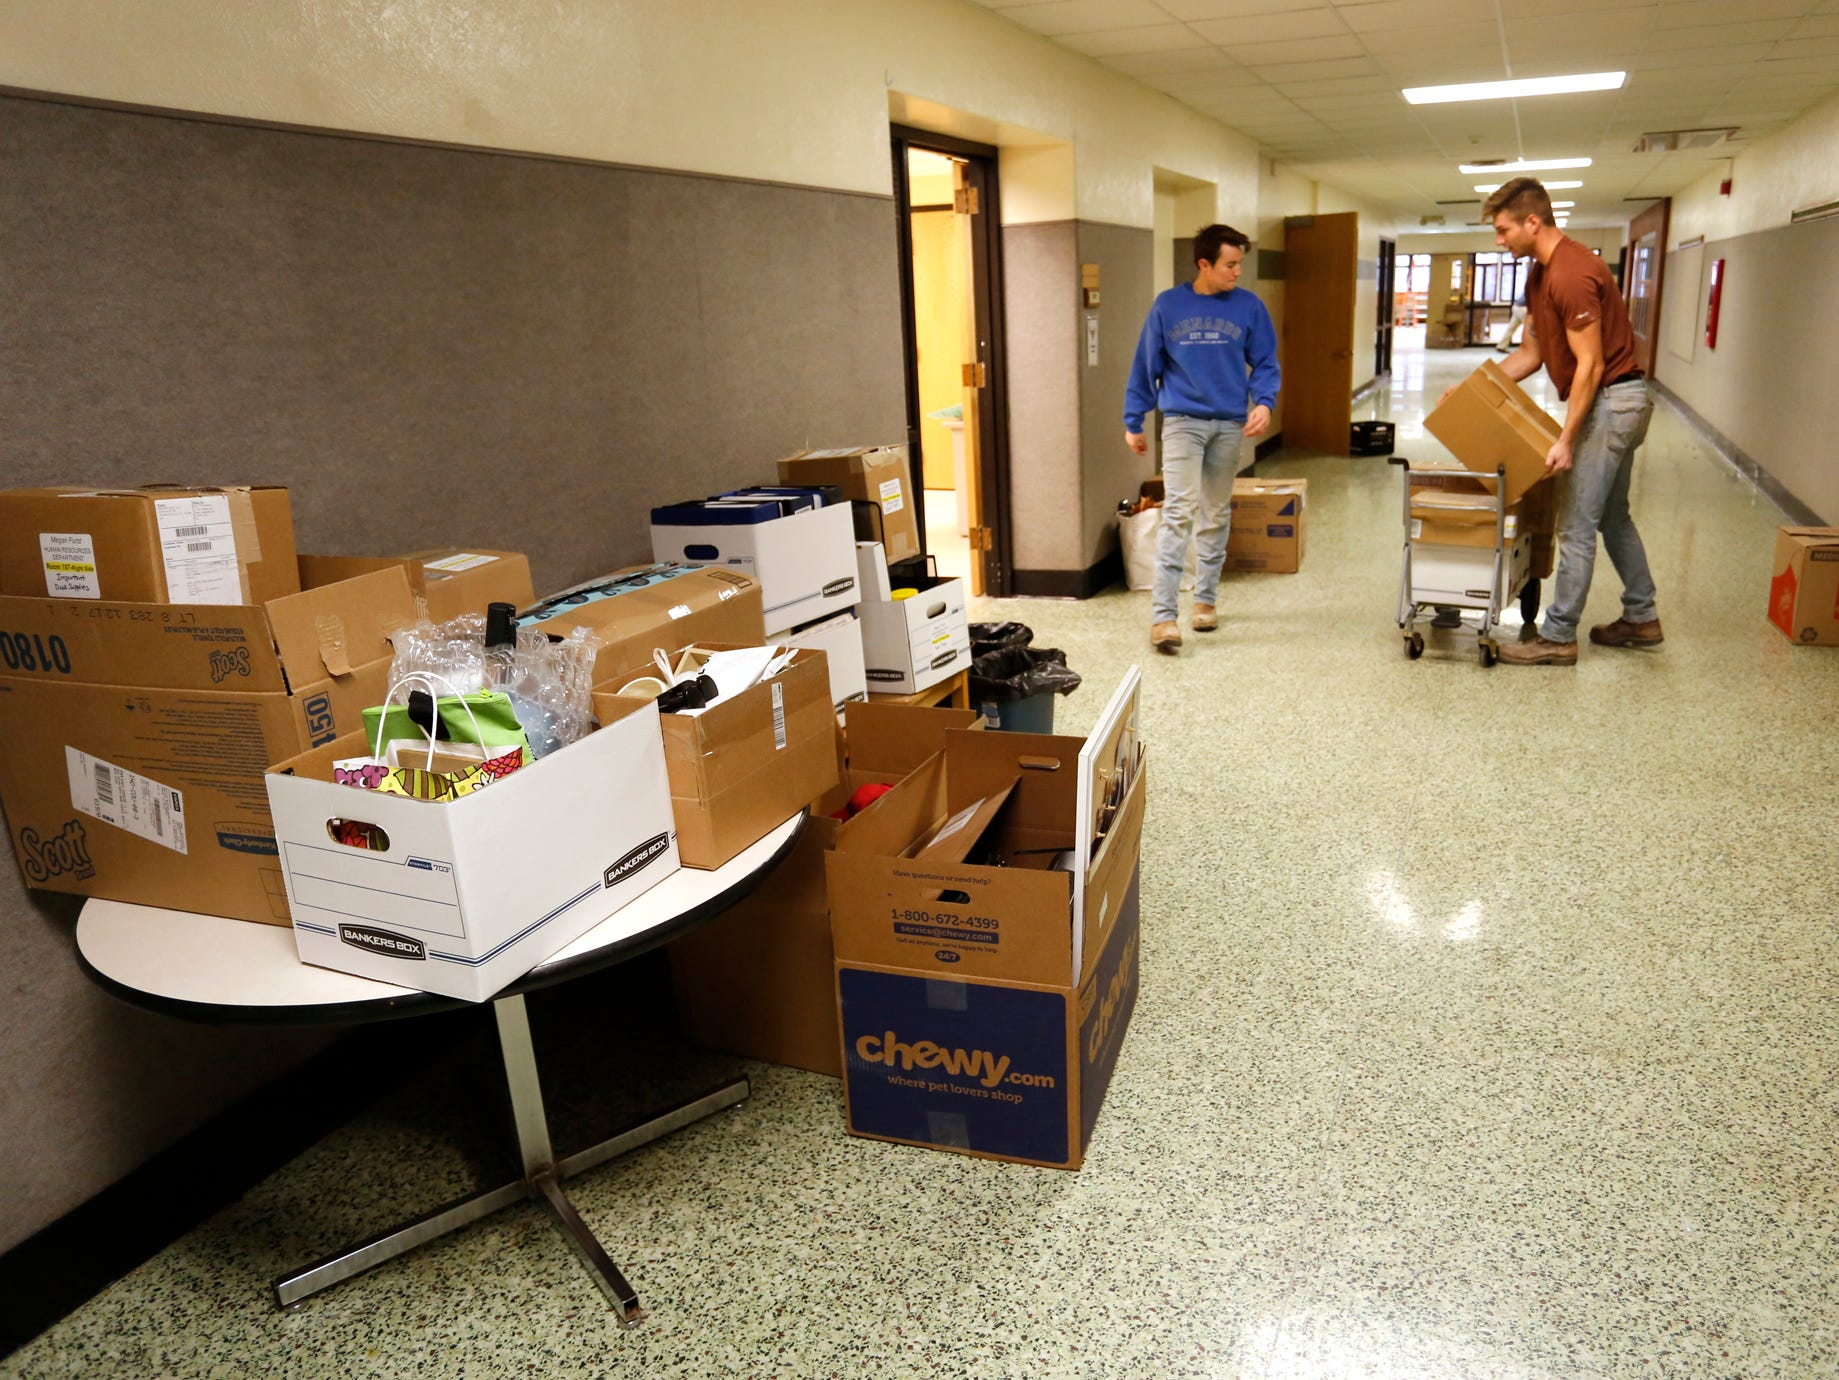 John Spencer, left, and Jarrod Patzschke help as the City of West Lafayette moves its offices from the Morton Center into Happy Hollow School Monday, December 17, 2018, in West Lafayette. The city will keep it's offices in Happy Hollow for two years while the Morton Center is being renovated. The city will move its offices back to the Morton Center when renovations are completed.